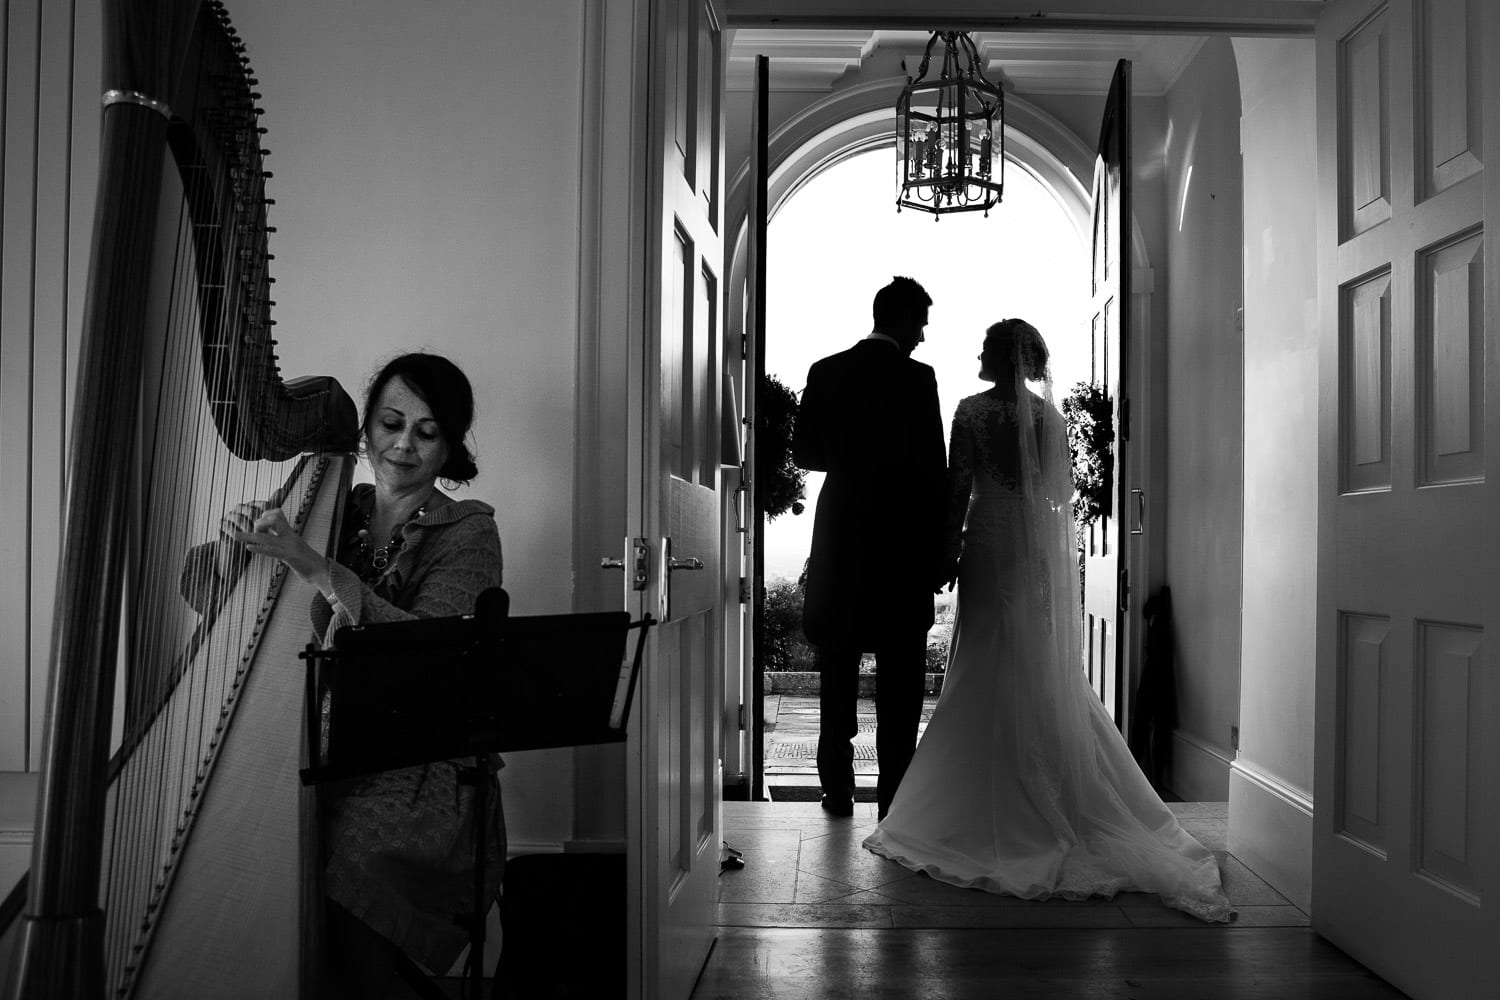 The bride and groom silhoueeted in the doorwat while the harpist plays